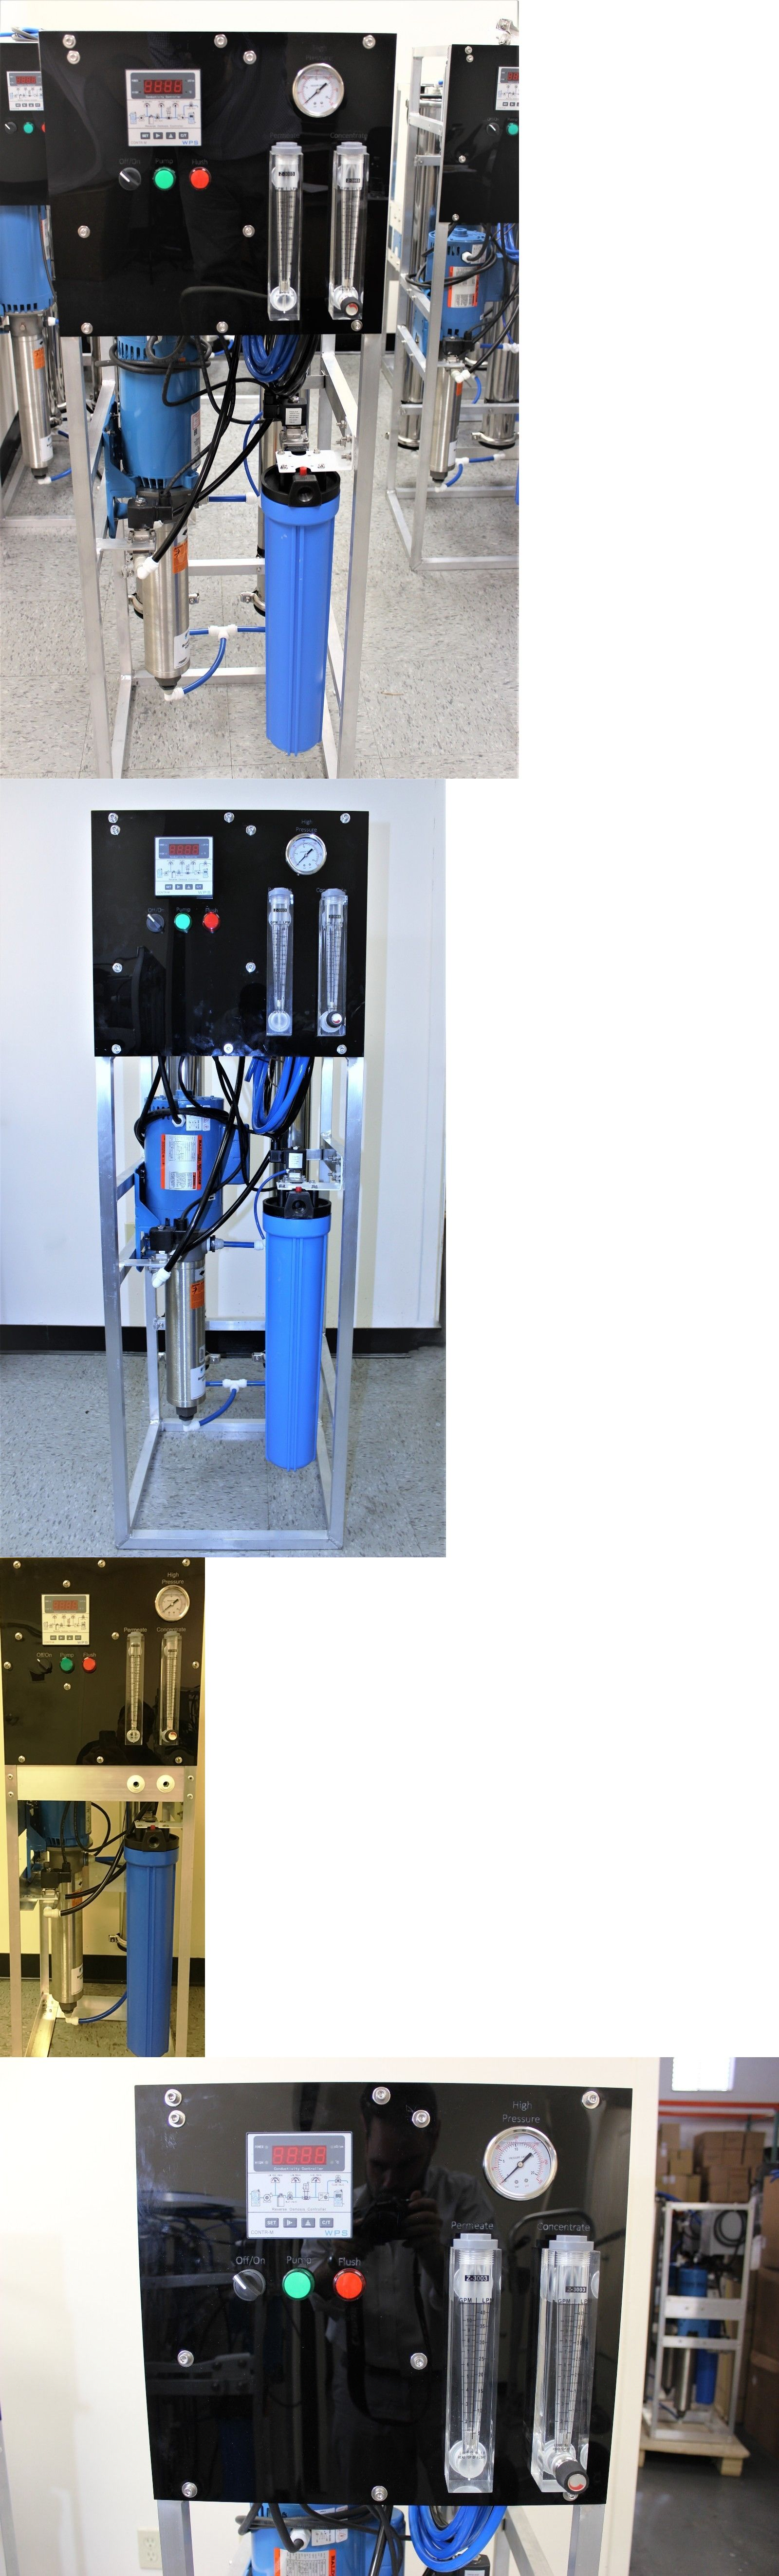 Our maintenance free high performance Water Filling Station is a